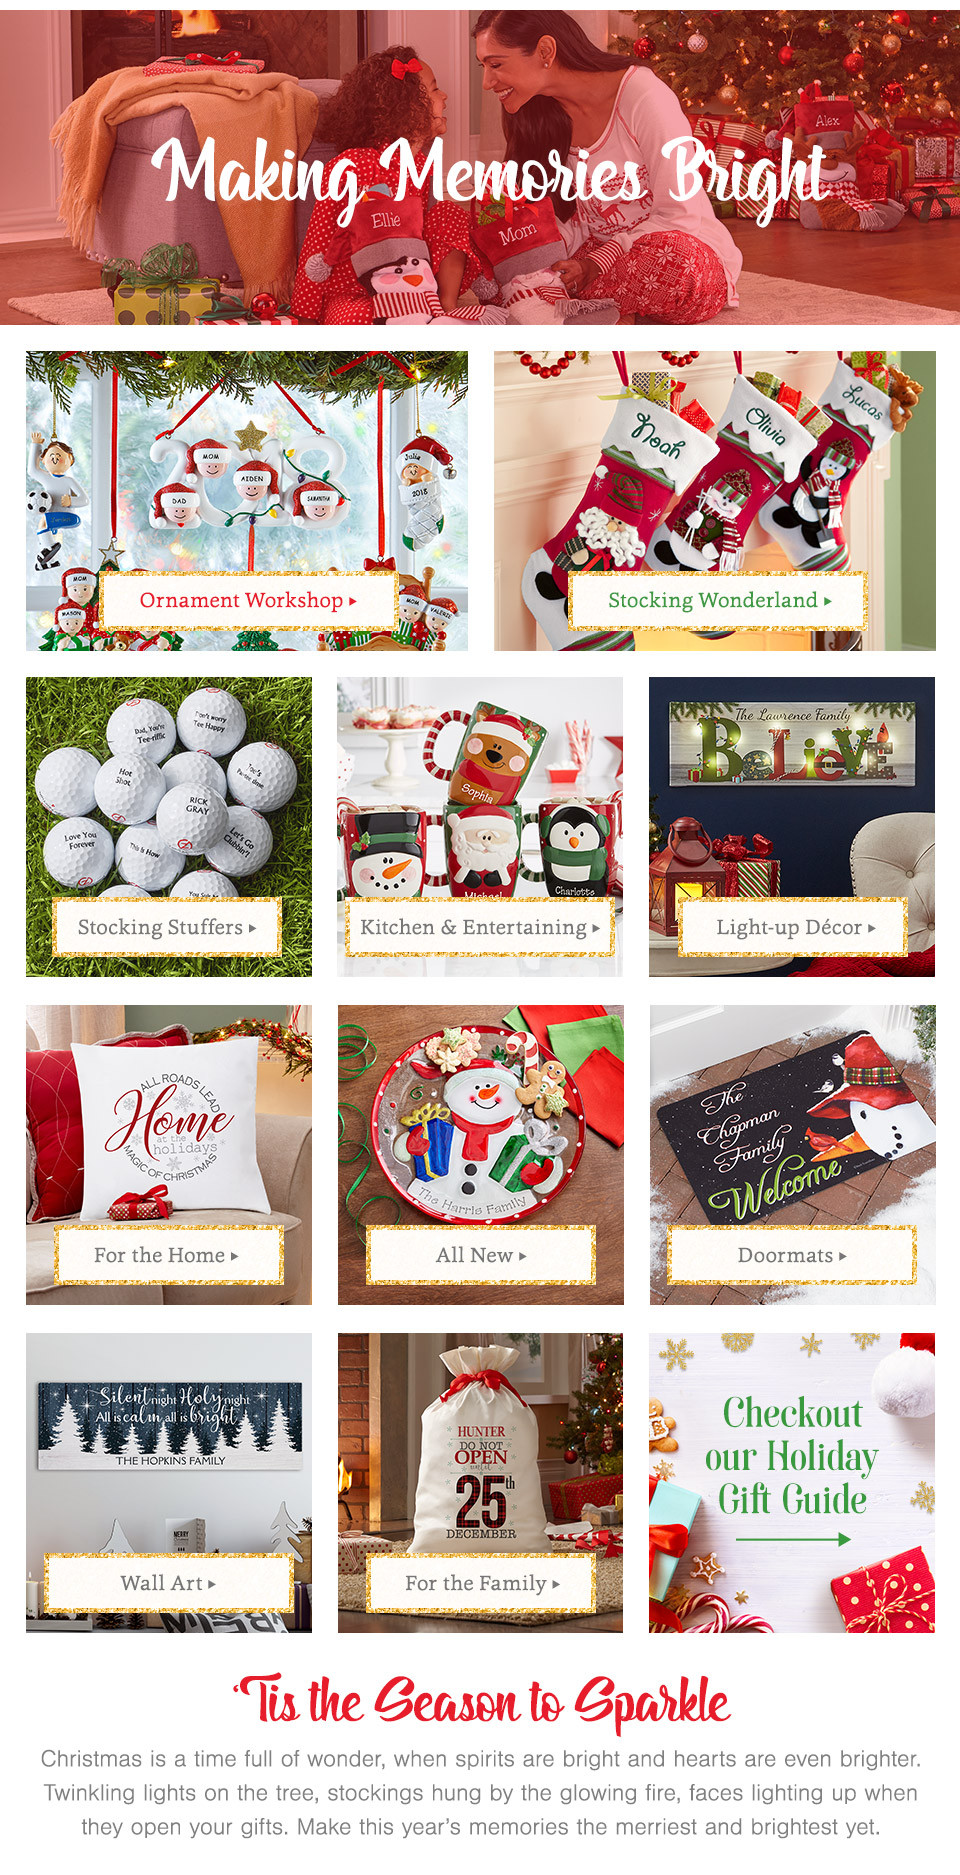 Best ideas about Holiday Gift Ideas 2019 . Save or Pin 2019 Personalized Christmas Gifts Now.